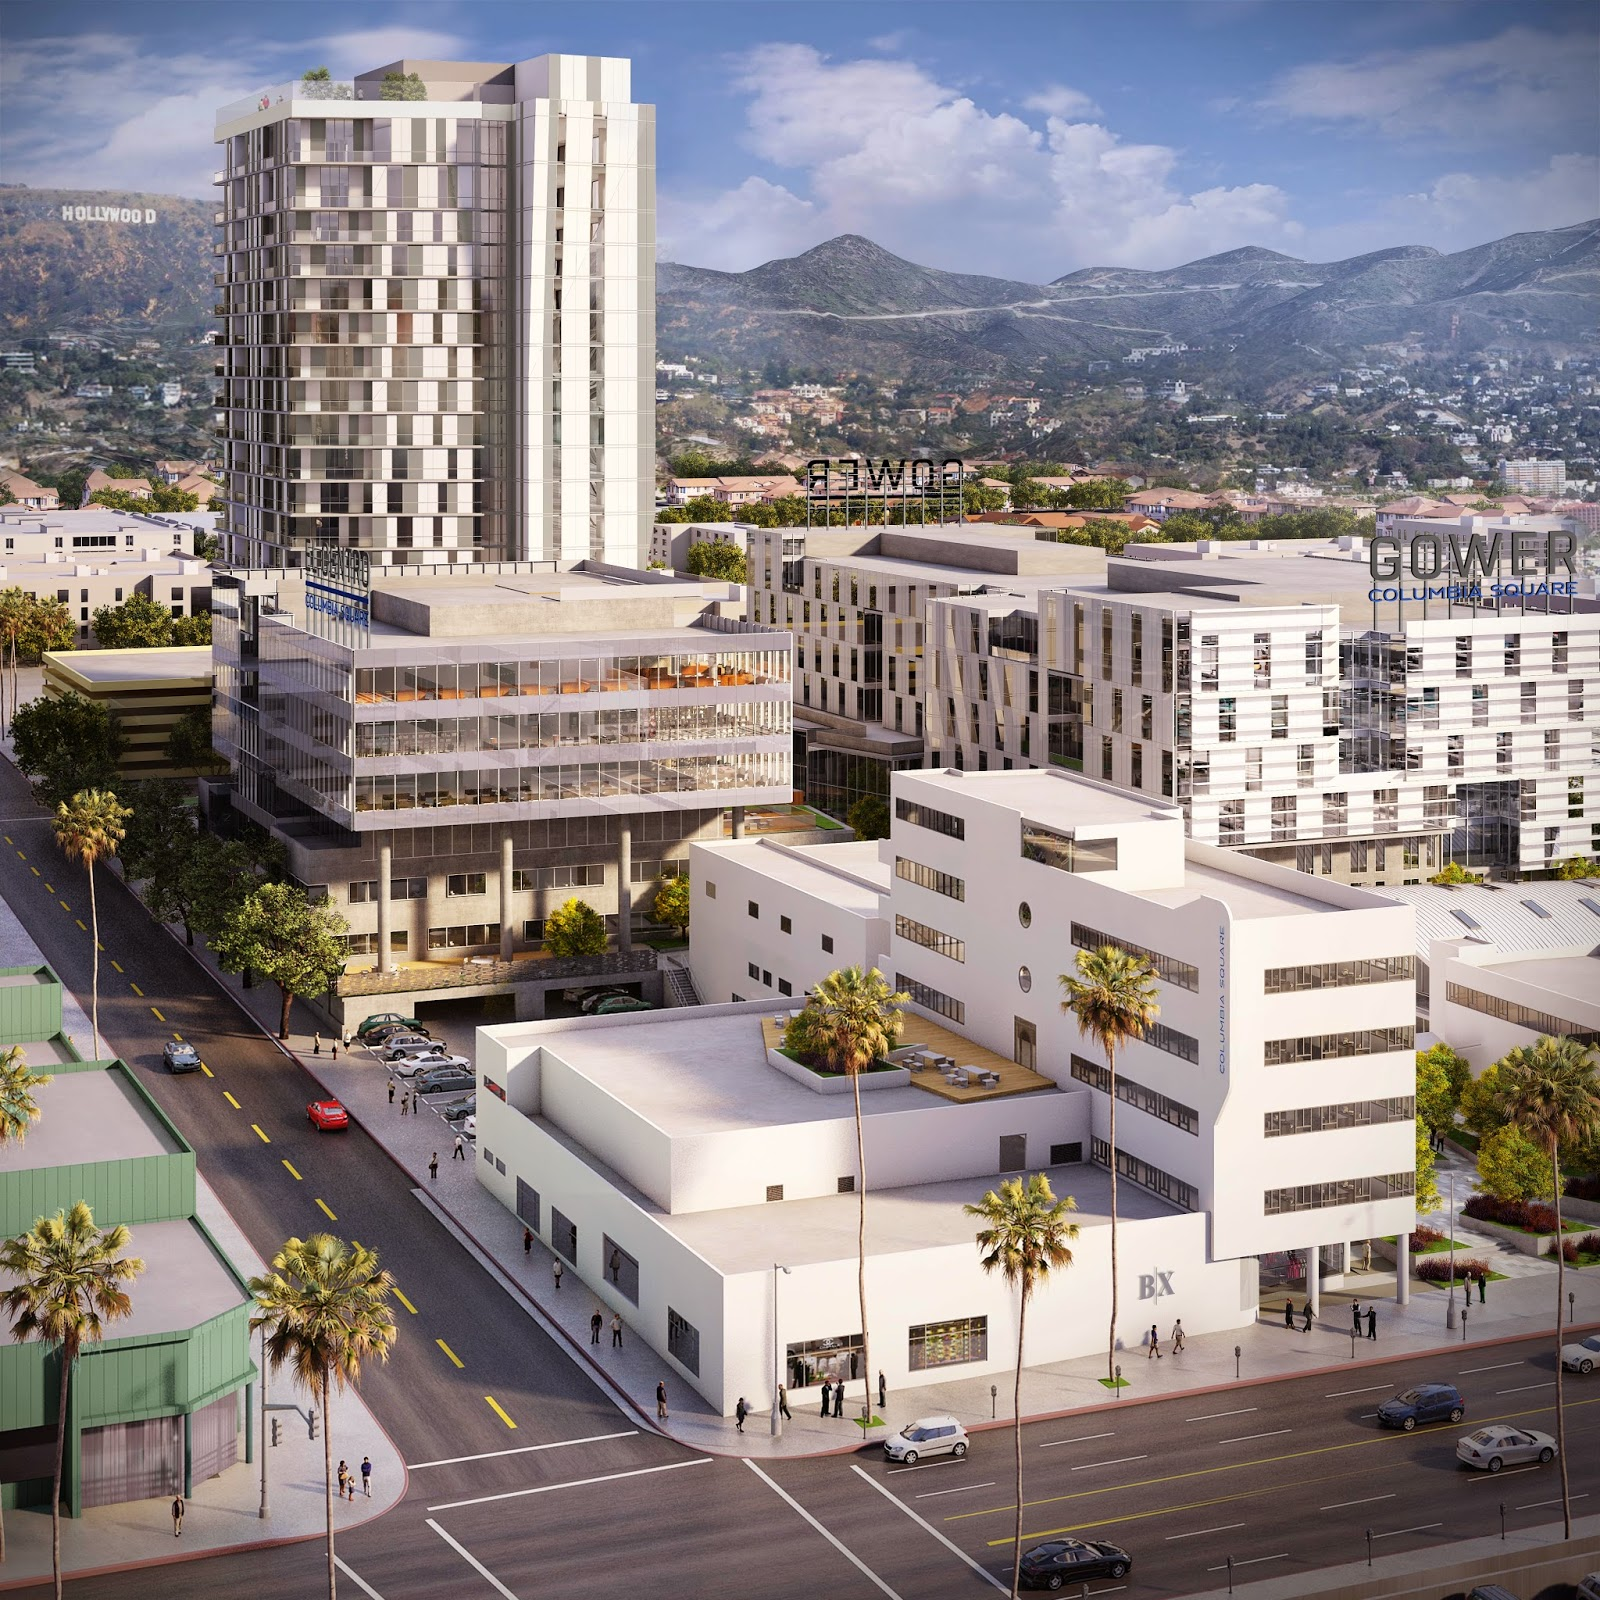 Building Los Angeles: Columbia Square Now Going Vertical